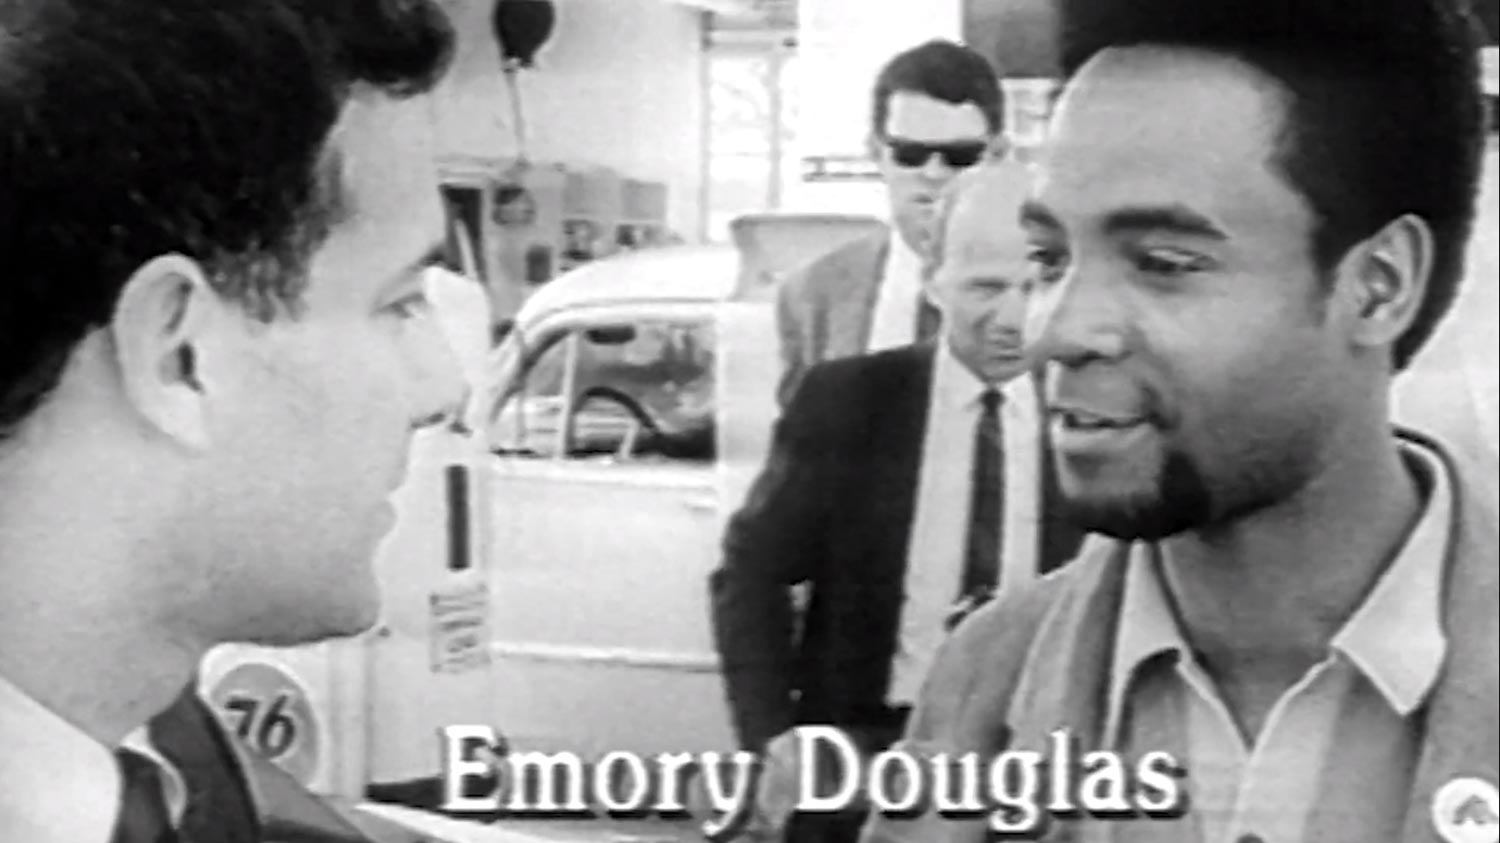 Emory Douglas, late 1960s film footage, Emory Douglas: The Art of the Black Panthers